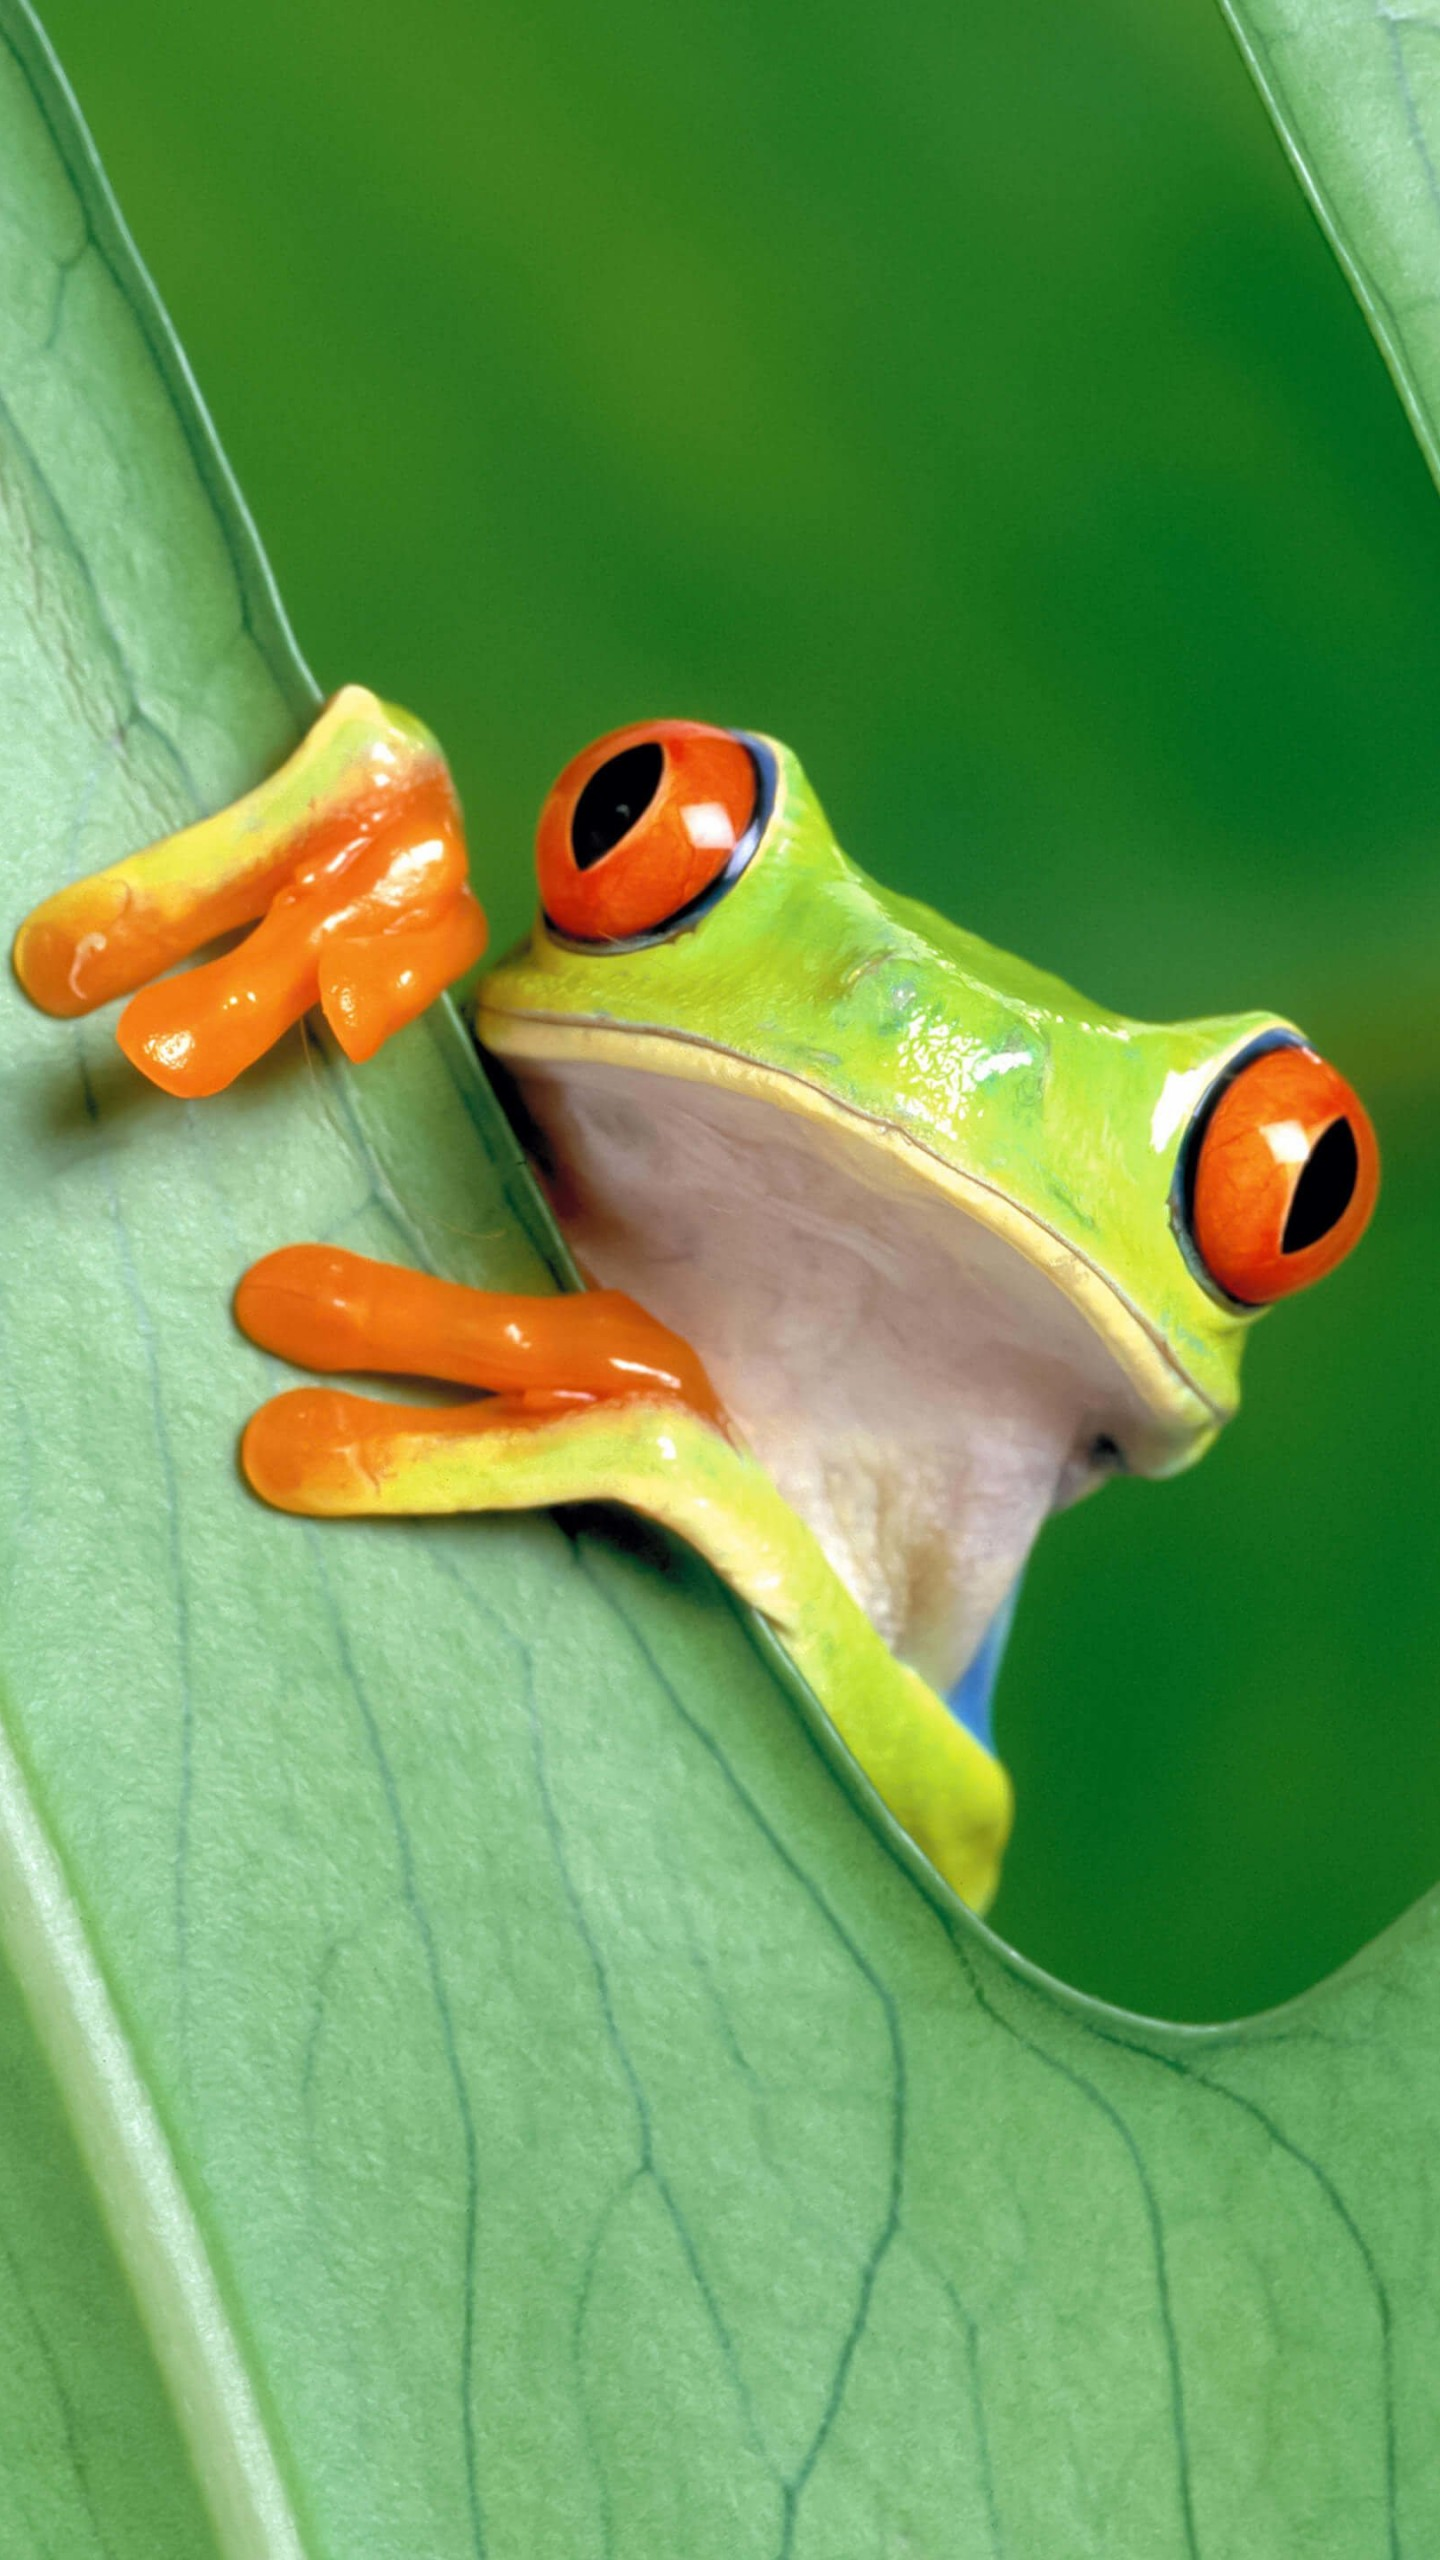 Red Eyed Tree Frog Wallpaper for SAMSUNG Galaxy S6